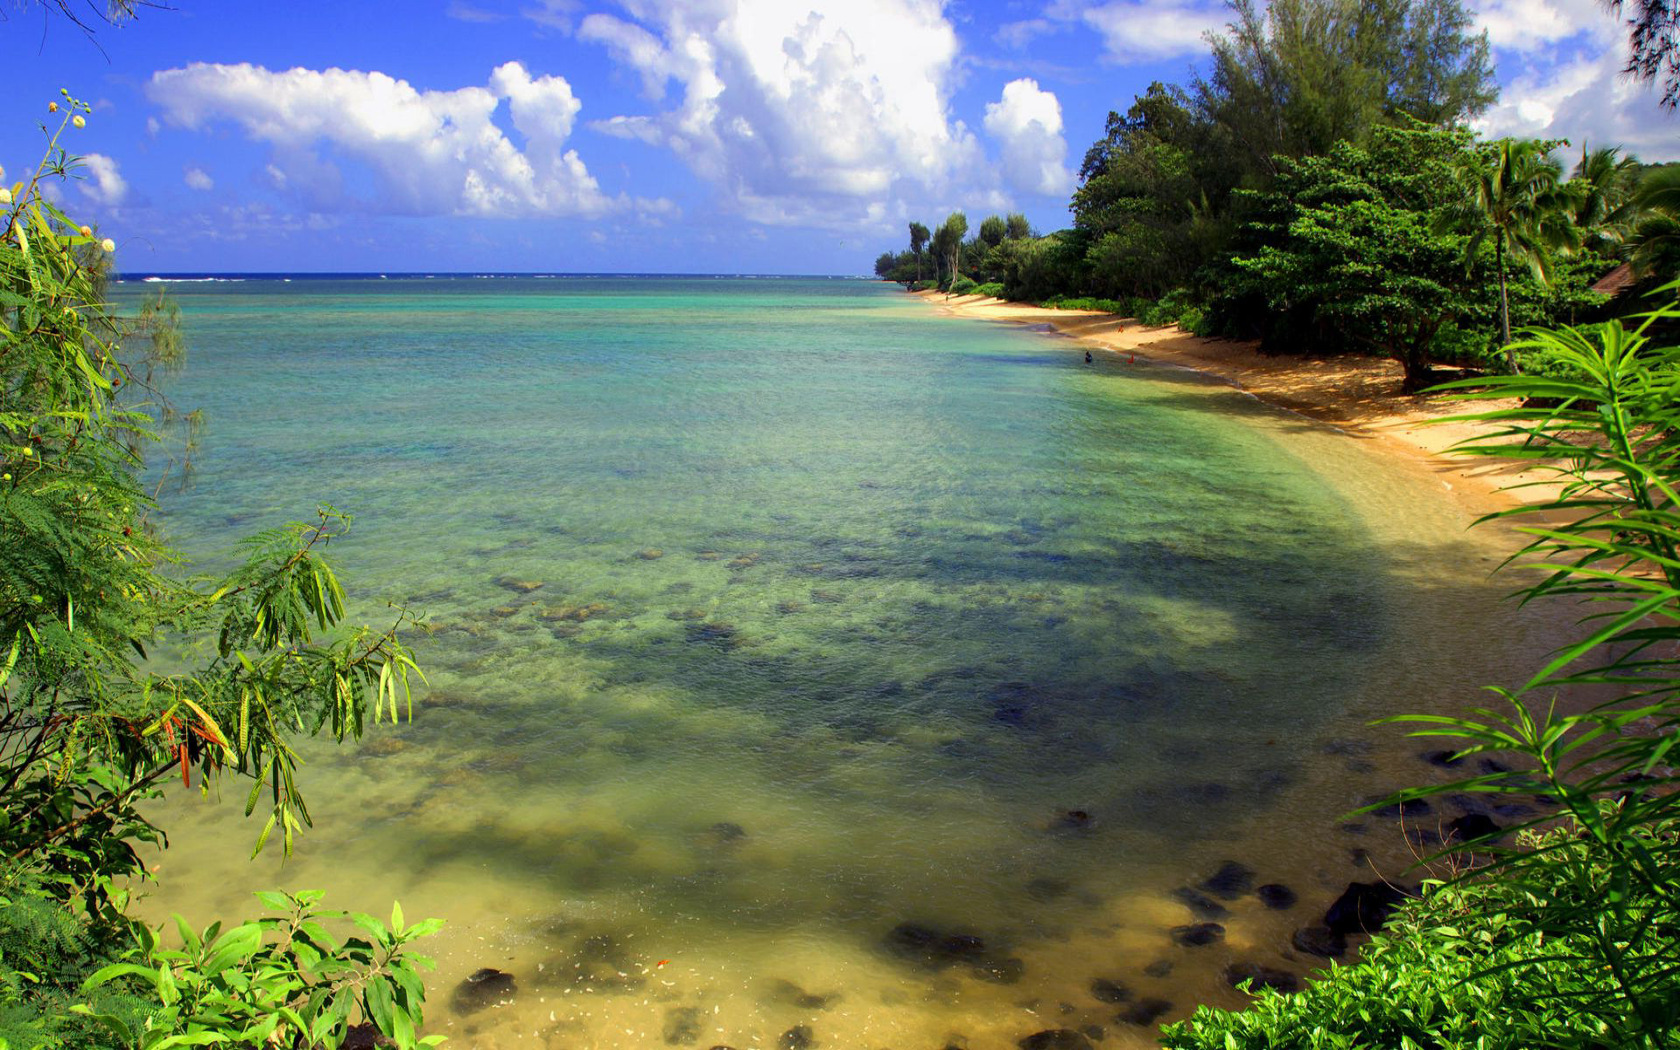 Download Tropical island beach wallpaper 1680x1050